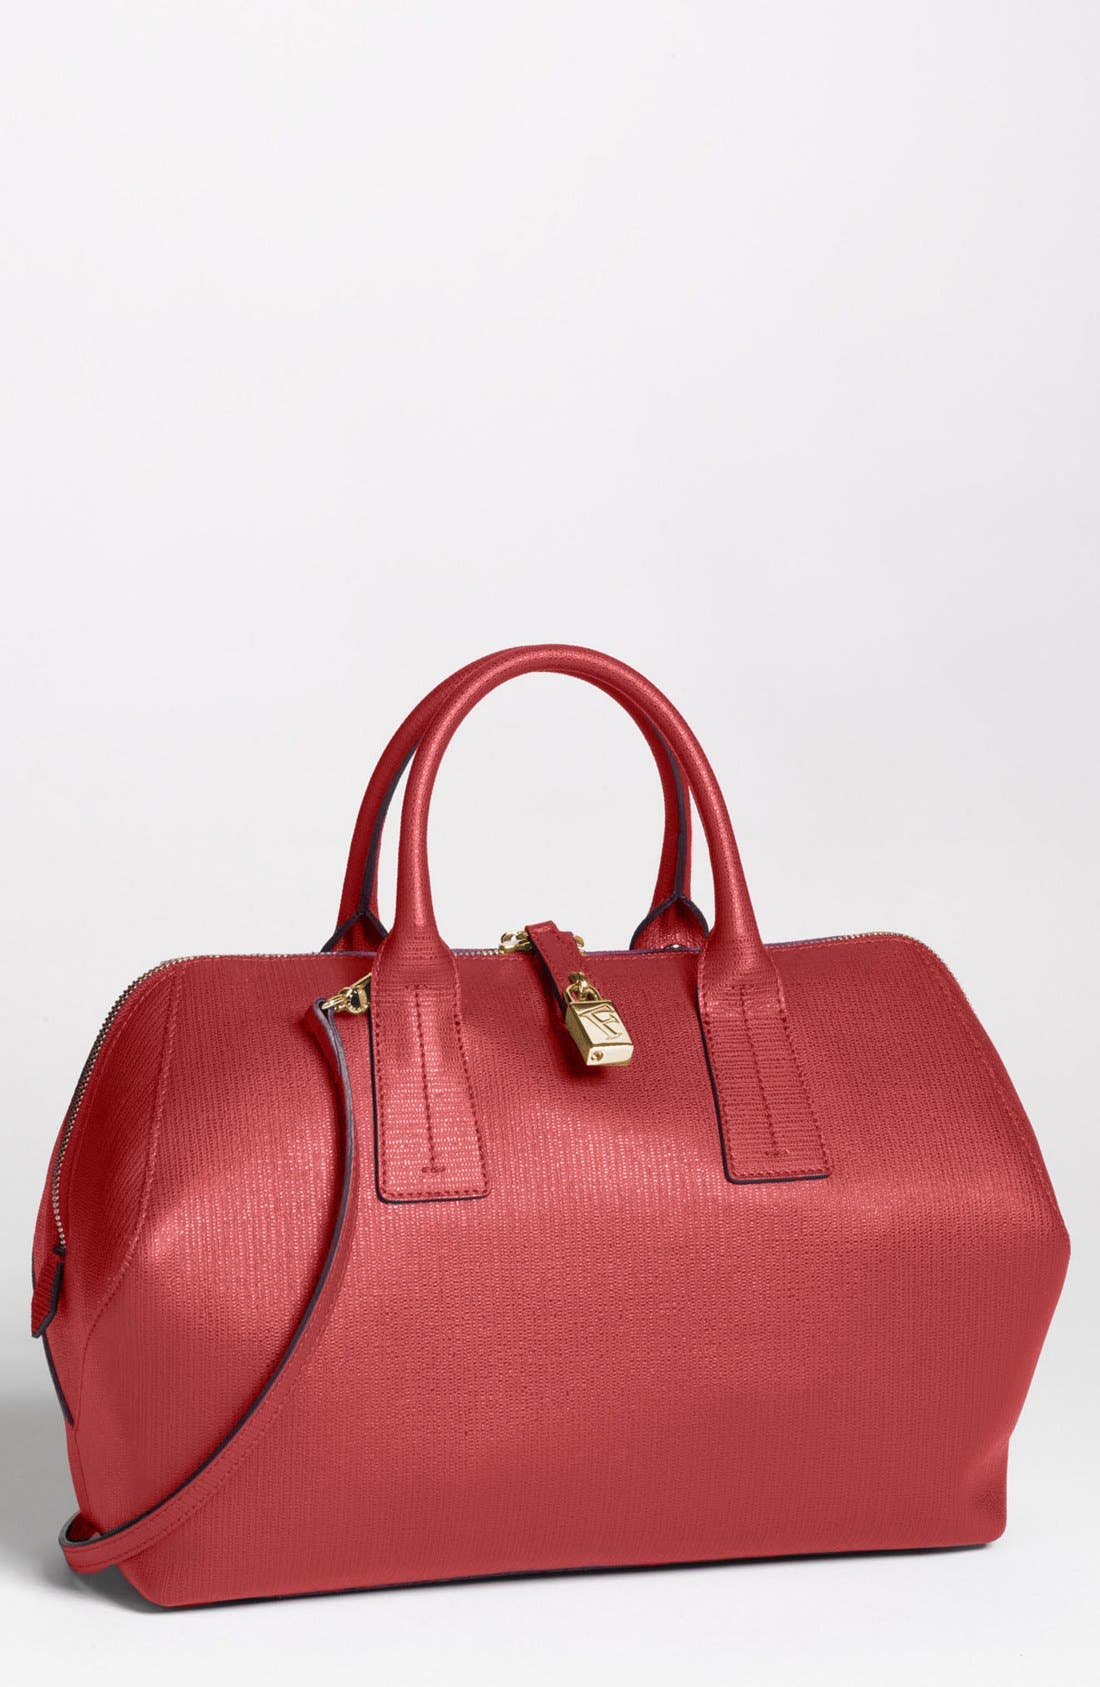 Main Image - Furla 'Papermoon' Satchel, Medium